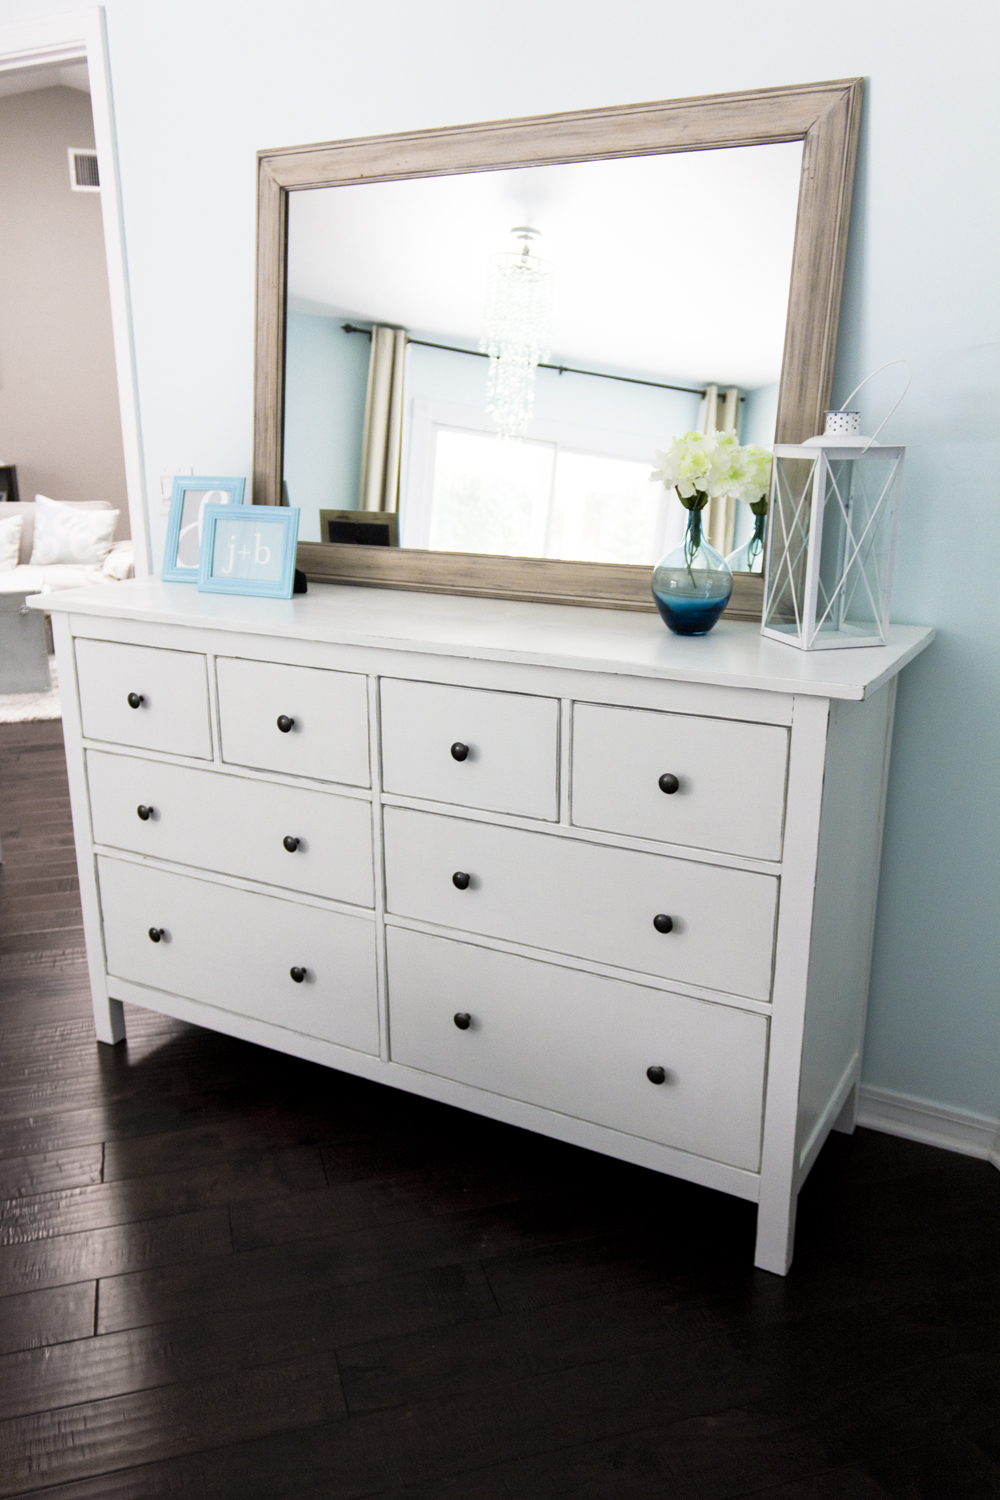 building a home remodeling ikea hemnes dresser hack a pinterest challenge project. Black Bedroom Furniture Sets. Home Design Ideas